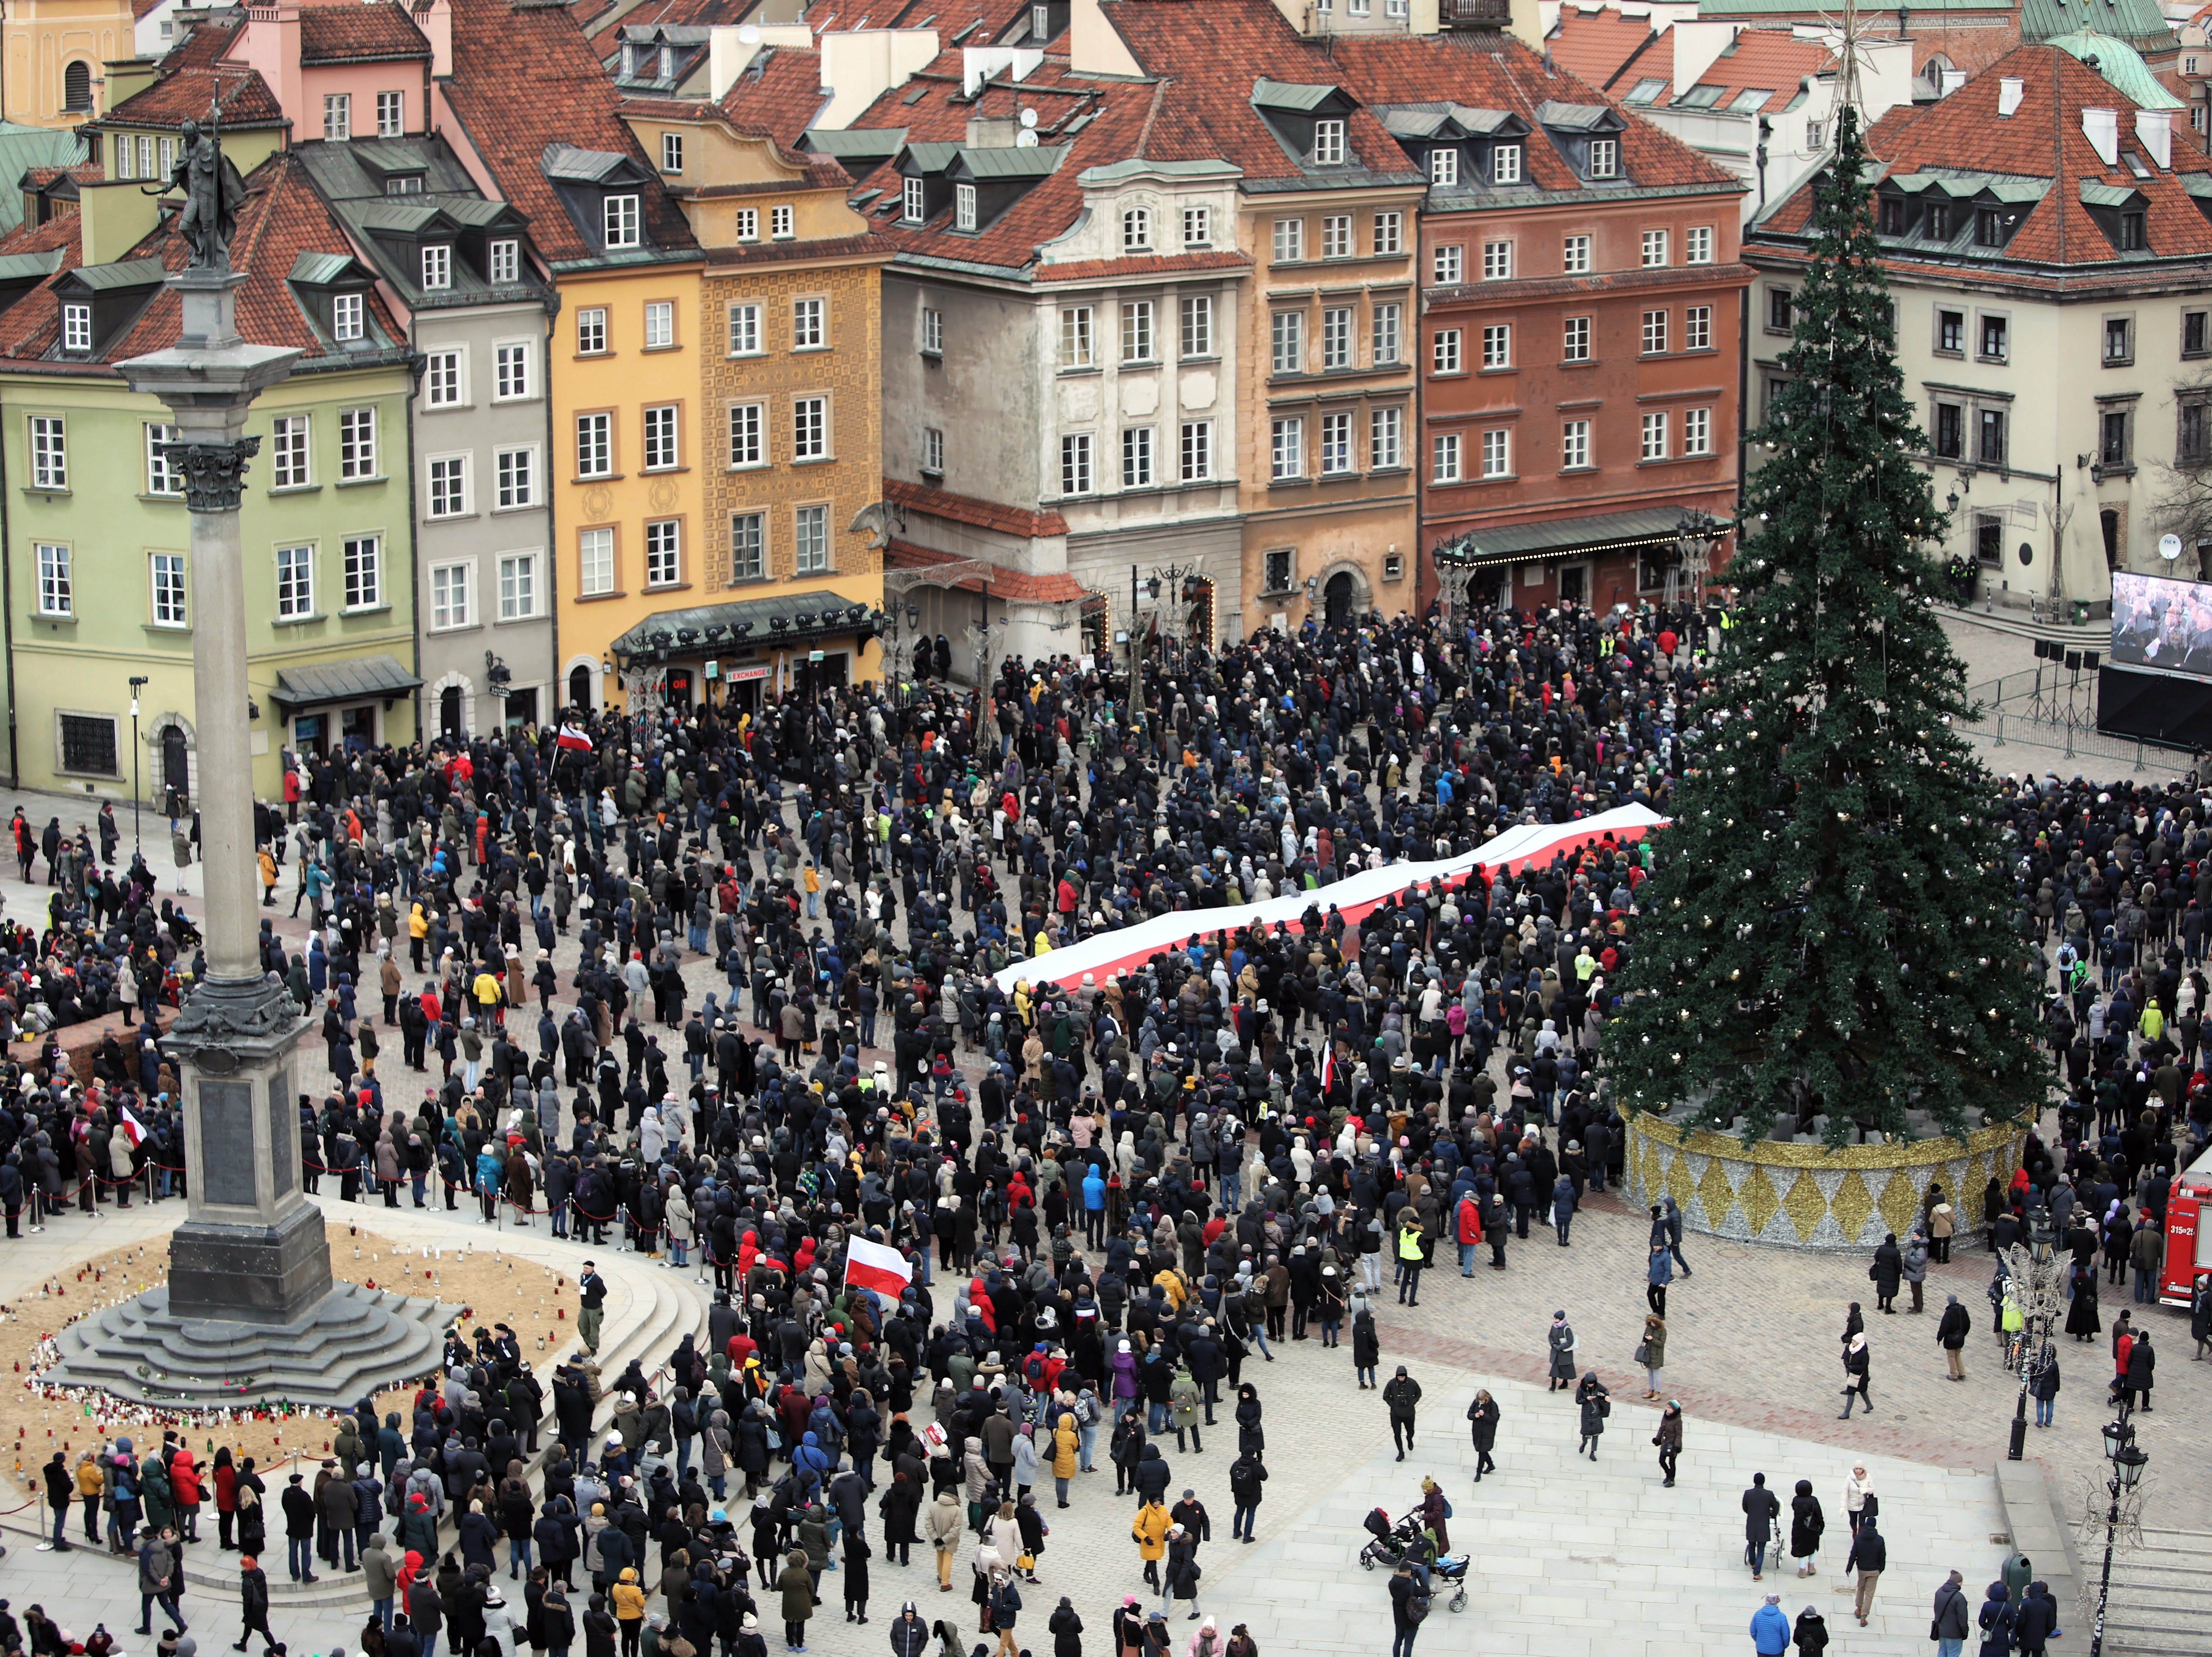 epa07299566 People gather on the Castle Square to watch on big screens a funeral service of the late Gdansk Mayor Pawel Adamowicz, in Warsaw, Poland, 19 January 2019. On 13 January evening Gdansk Mayor Pawel Adamowicz was stabbed by a recently released convicted criminal who rushed onto the stage during the Great Orchestra of Christmas Charity finale in Gdansk. Adamowicz died from his injuries on 14 January afternoon without regaining consciousness. Adamowicz will be laid to rest in Gdansk's St. Mary's Basilica.  EPA-EFE/LESZEK SZYMANSKI POLAND OUT